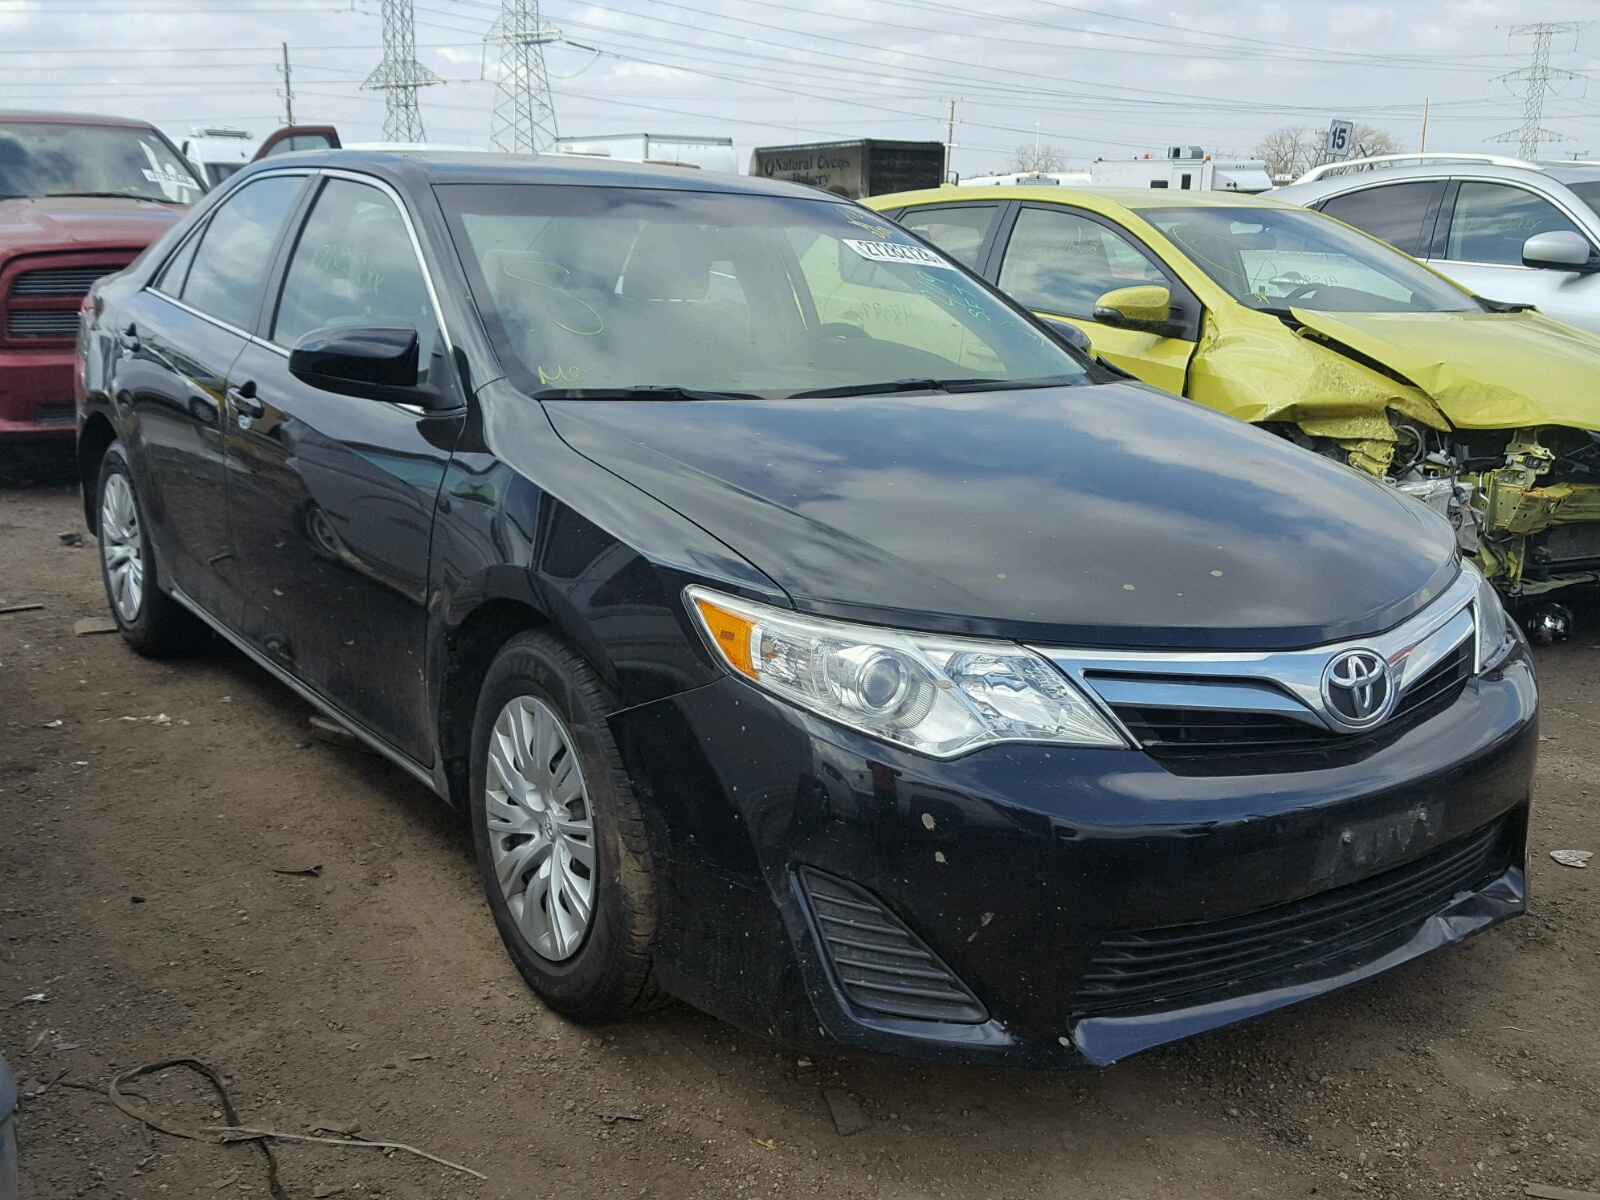 Auto Auction Ended on VIN 4T1BE46K48U 2008 TOYOTA CAMRY in MO